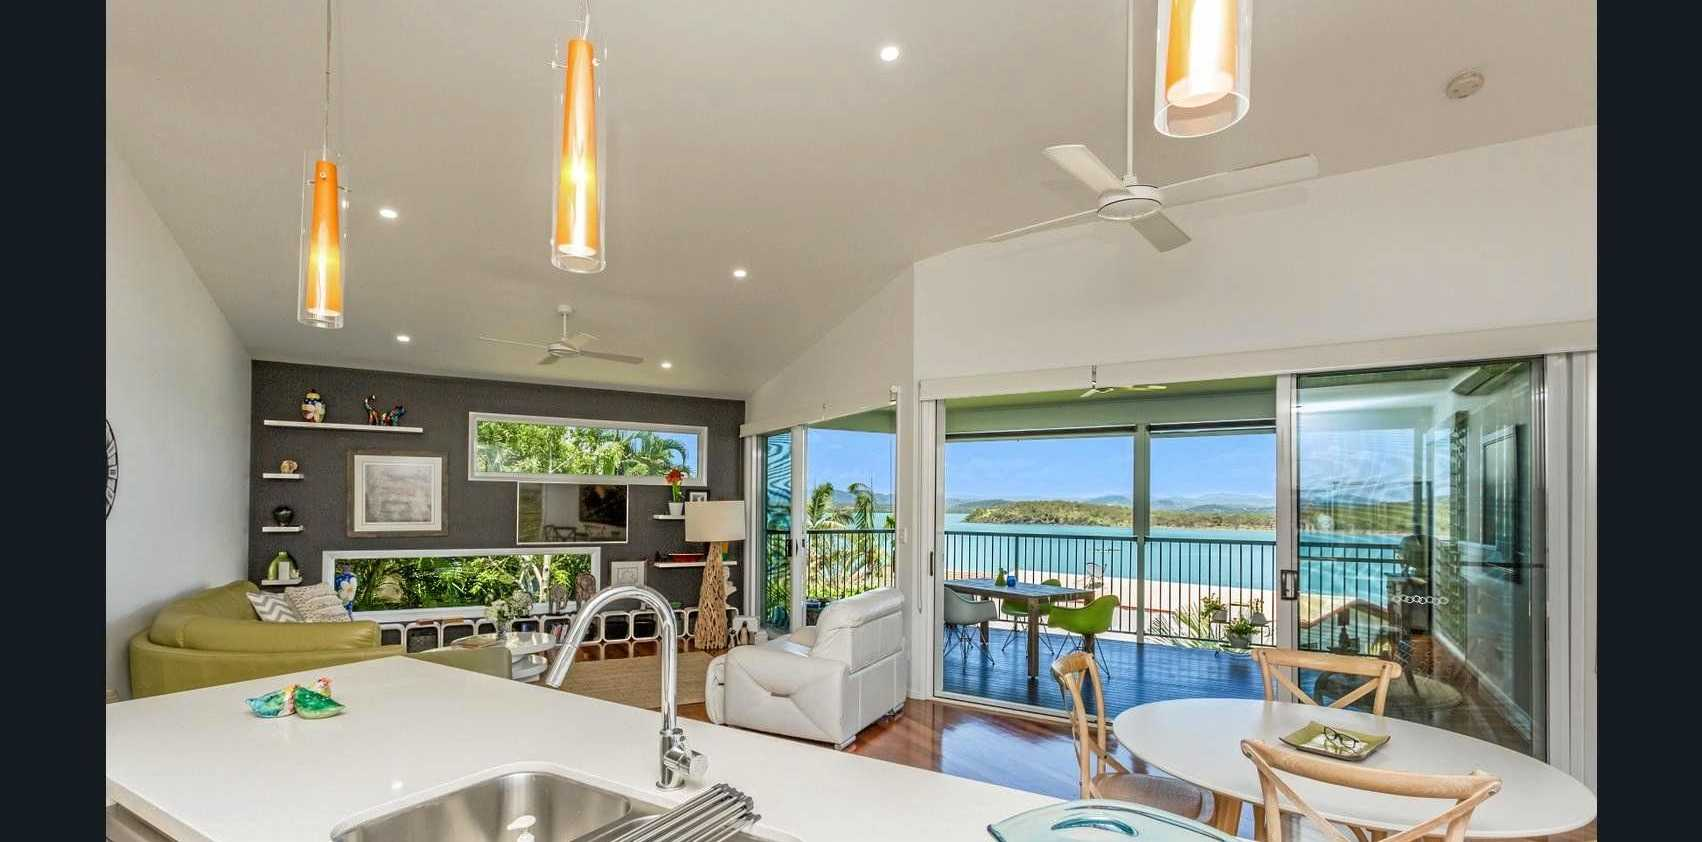 The view from the architect-designed home on Captain Blackwood Drive, Sarina Beach. Owner Maureen Bullock is returning to Victoria.